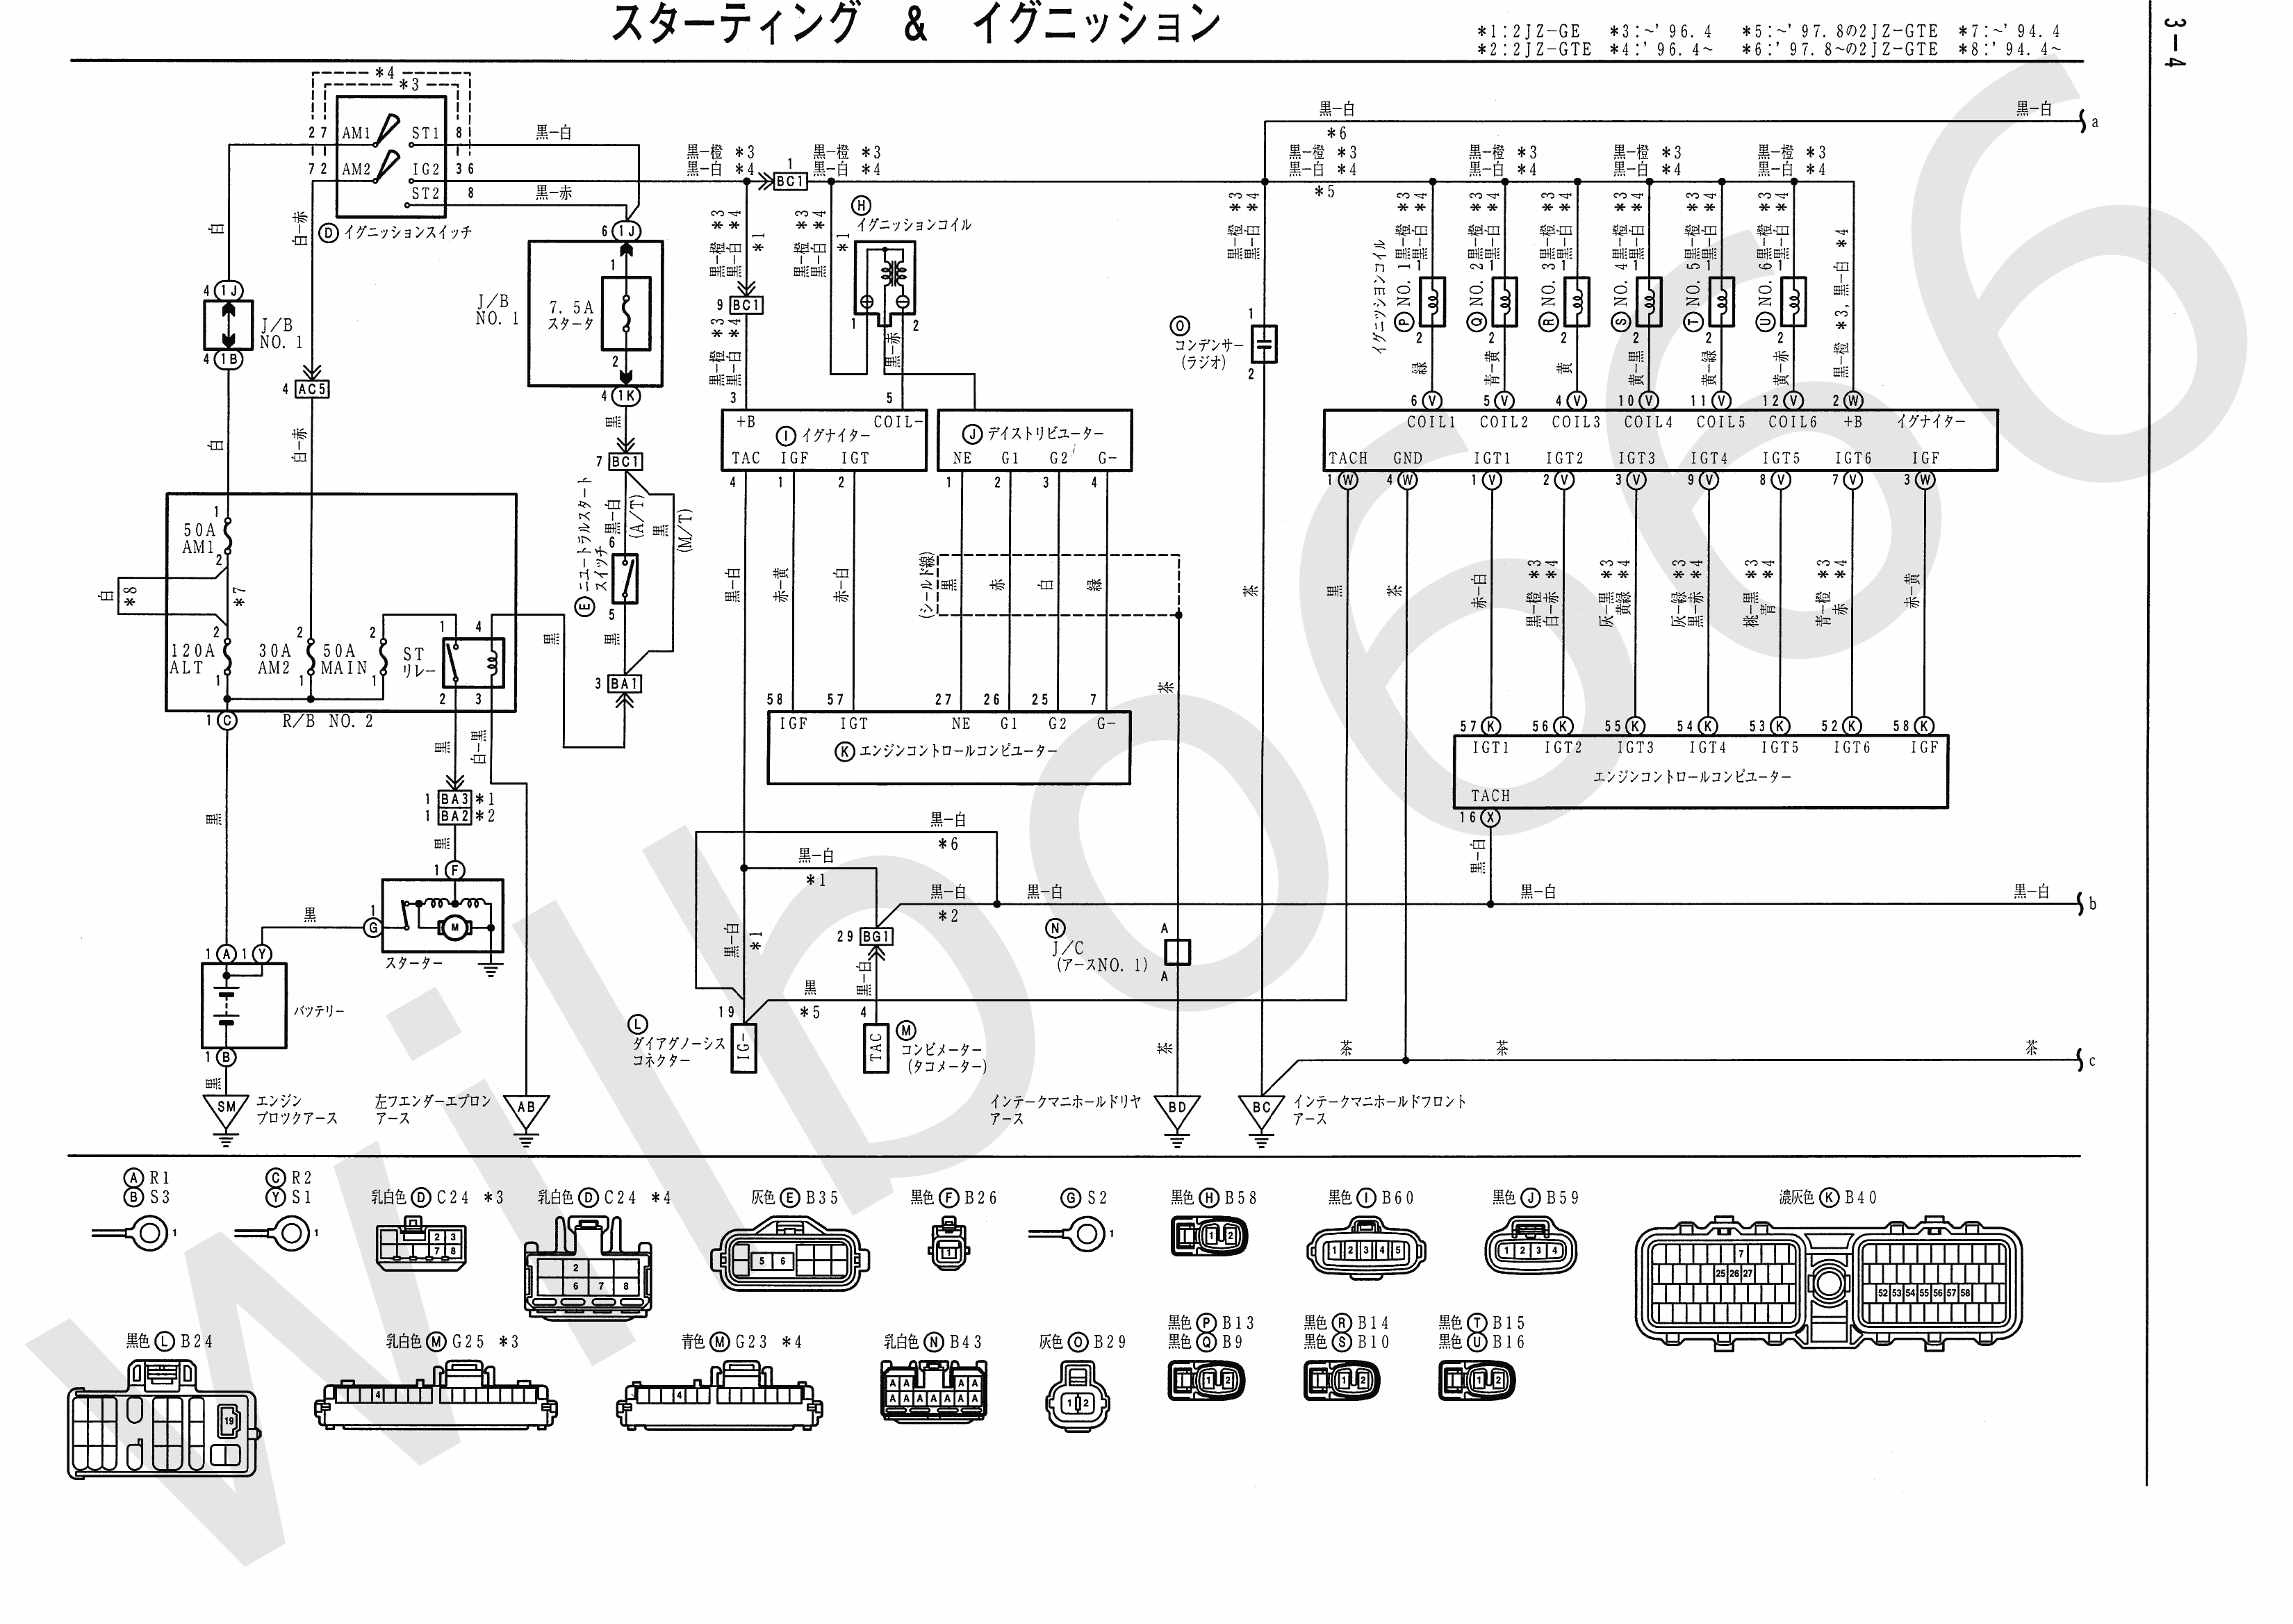 merkur xrti fuel pump wiring diagram route schematic wiring merkur xr4ti fuel pump wiring diagram